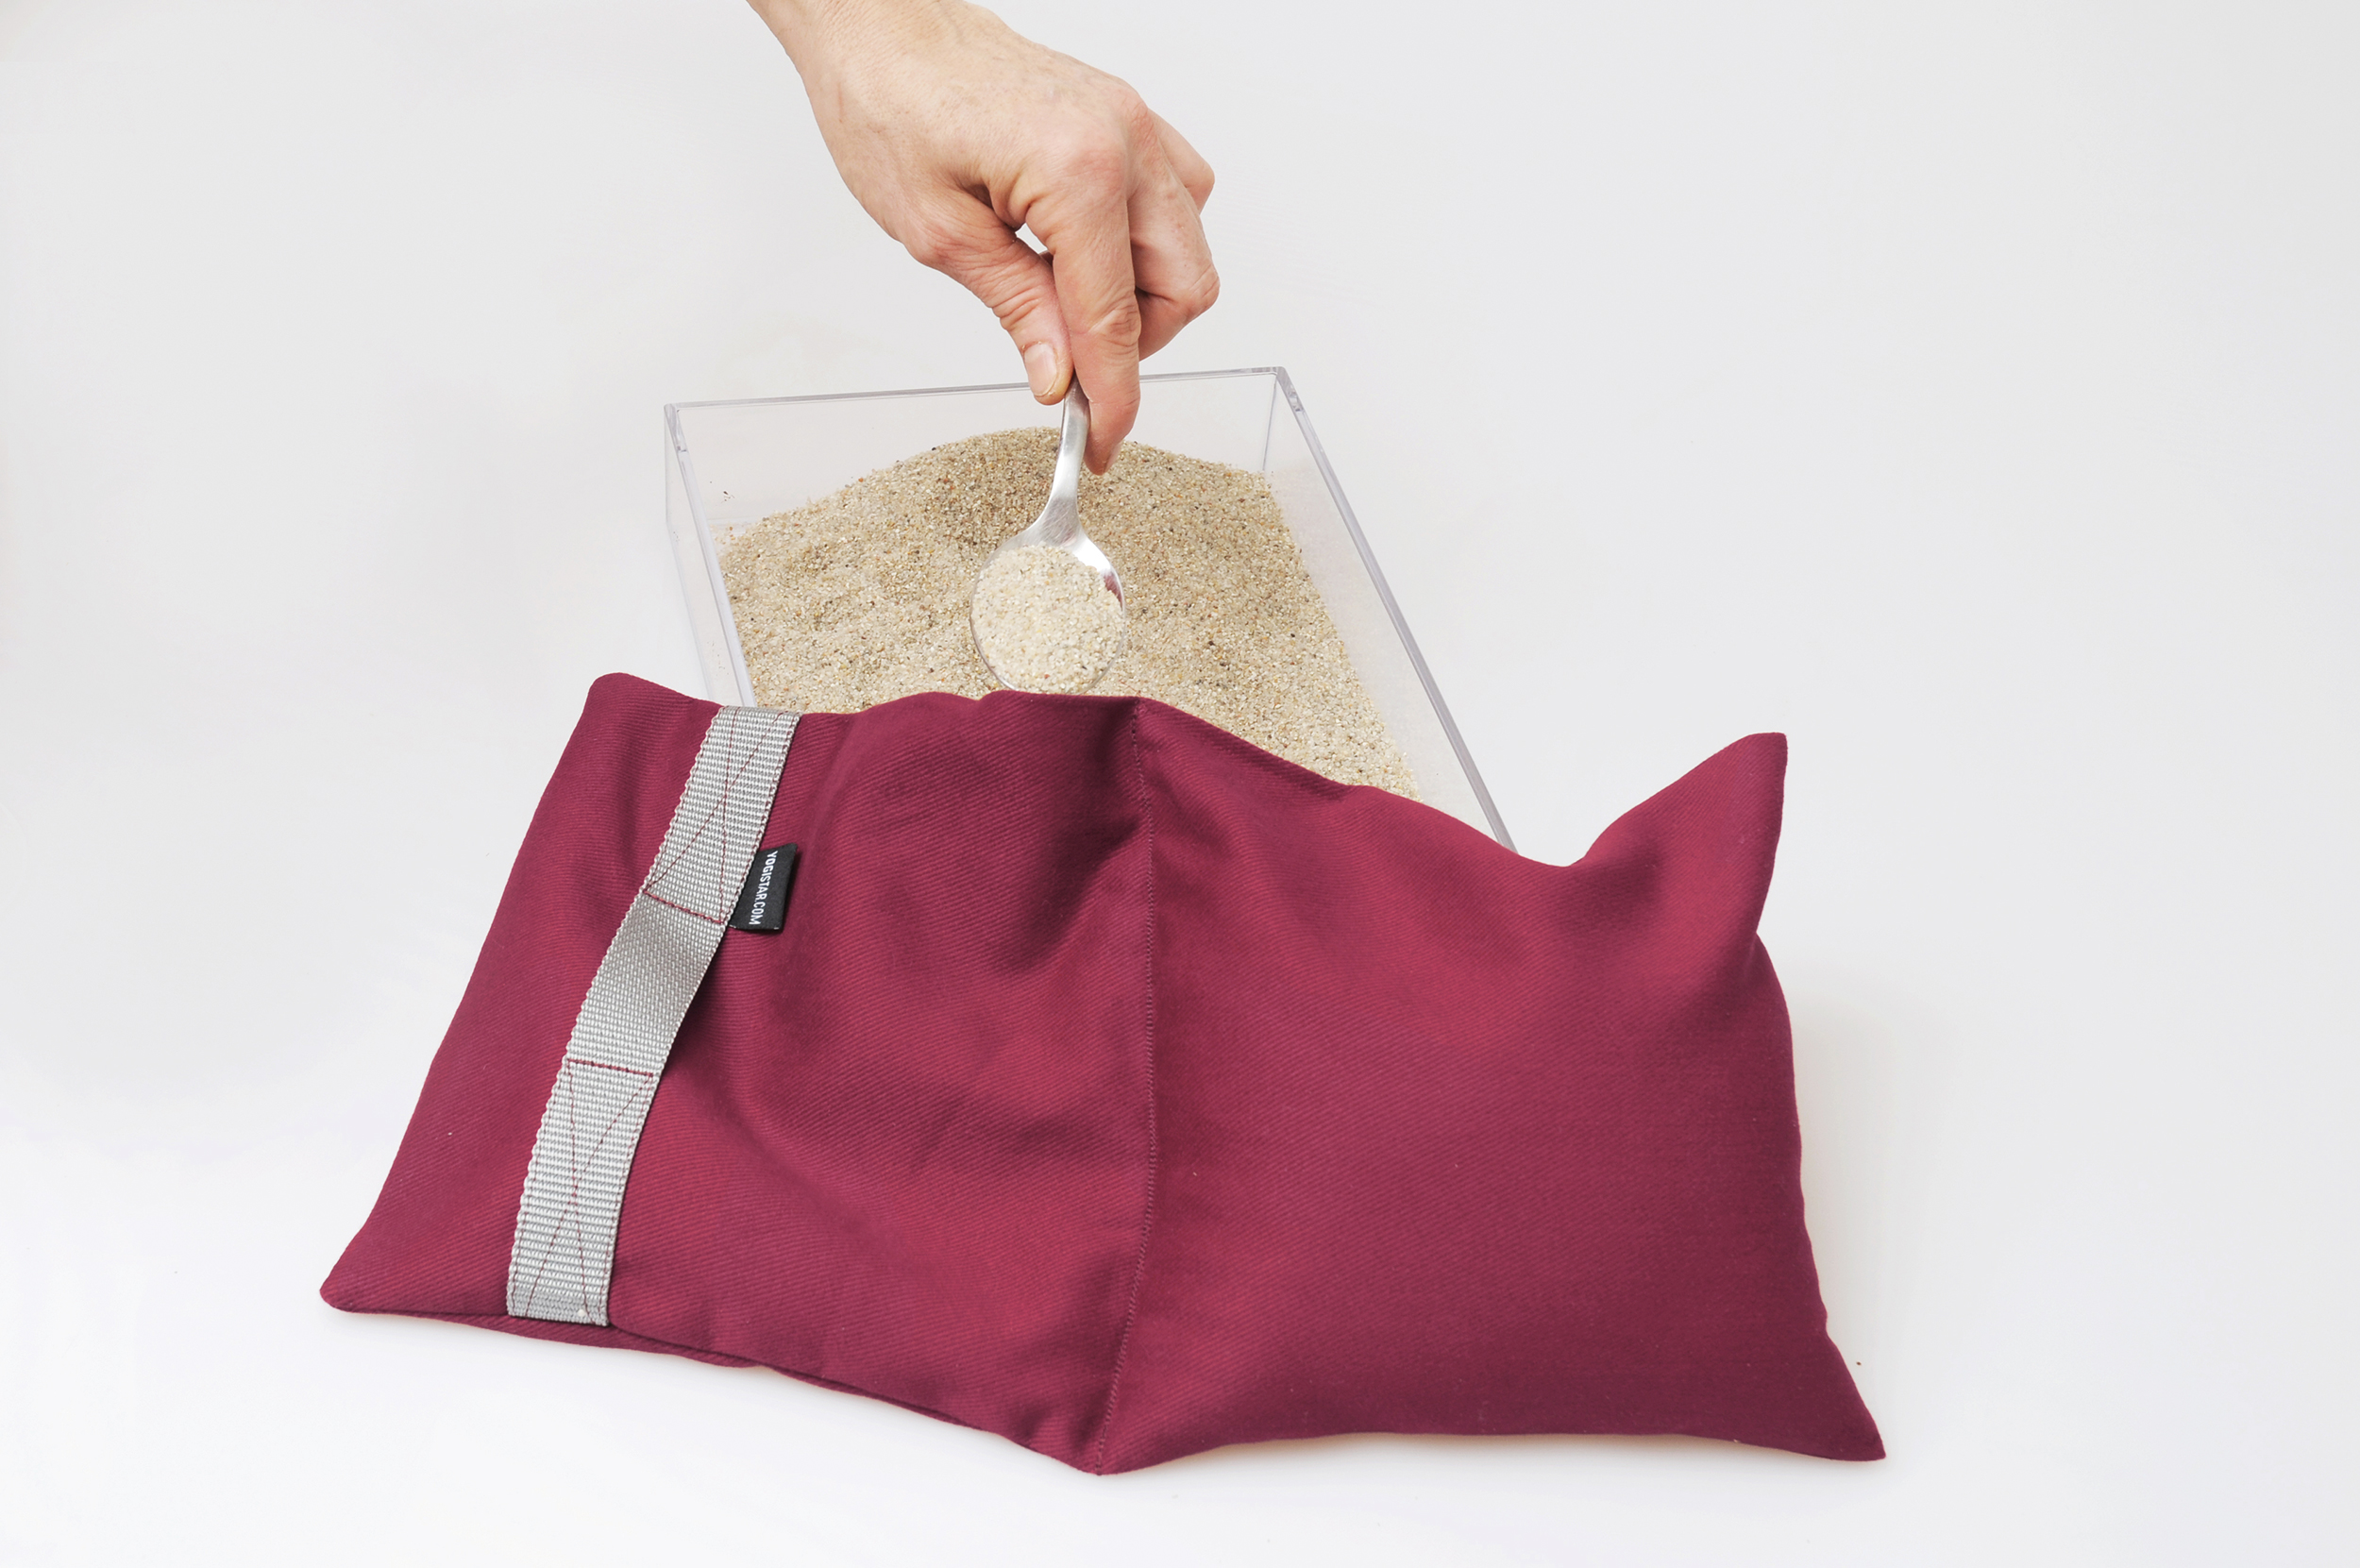 Yoga sandbag balanced